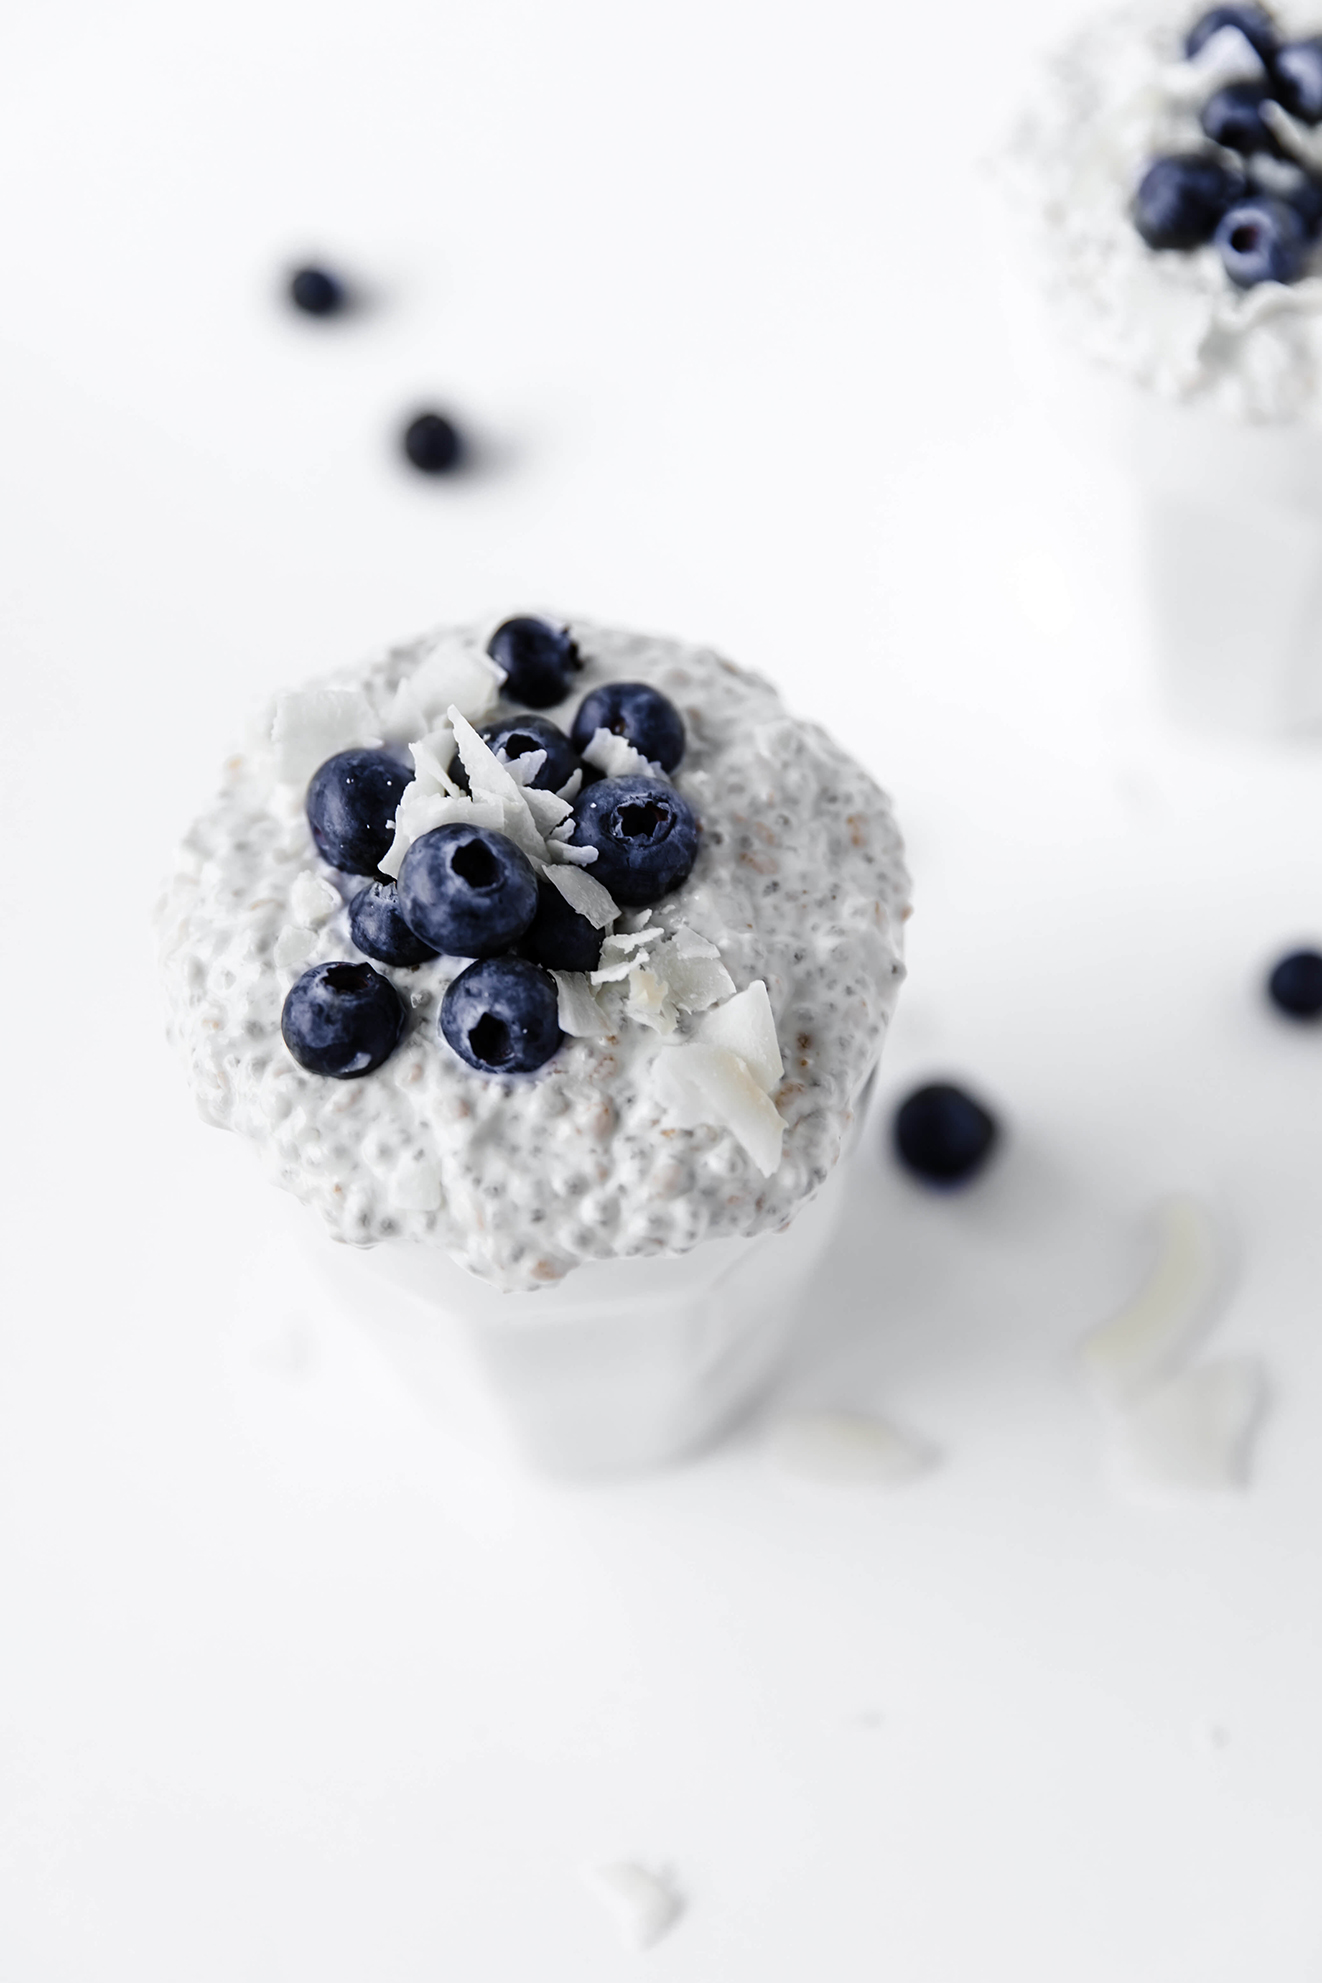 Vegan Chia Pudding, Modern Food Stories, food photography